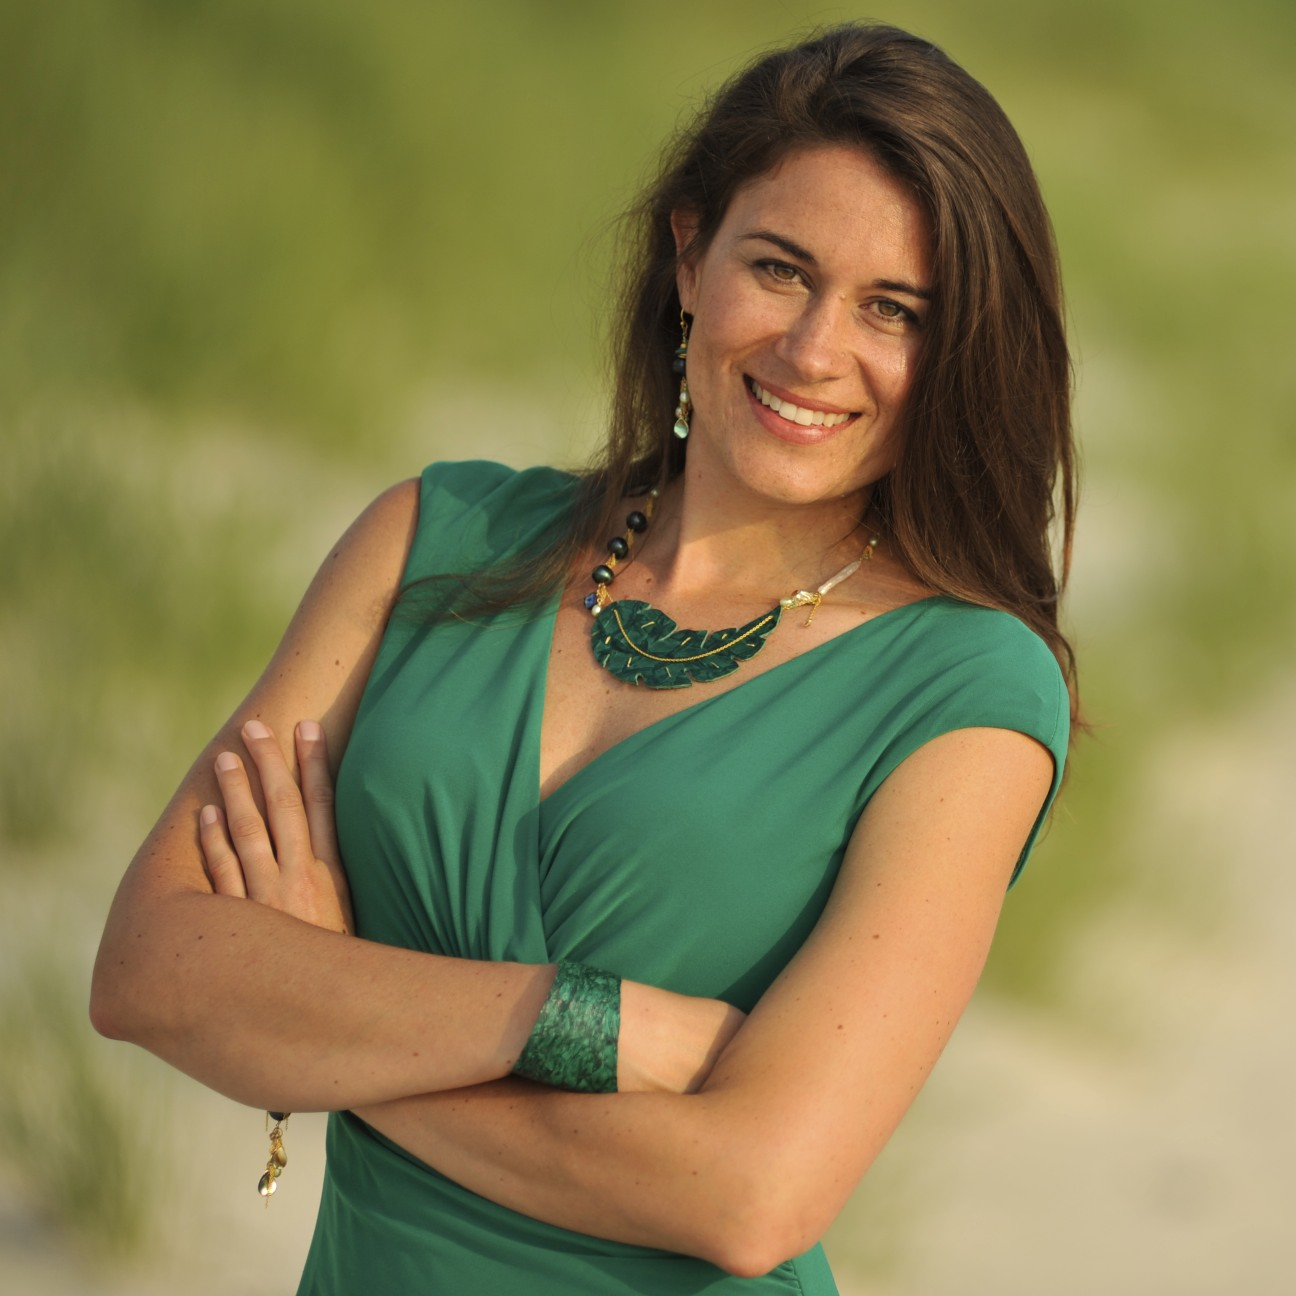 Moonrise Jewelry Founder Meredith Restein